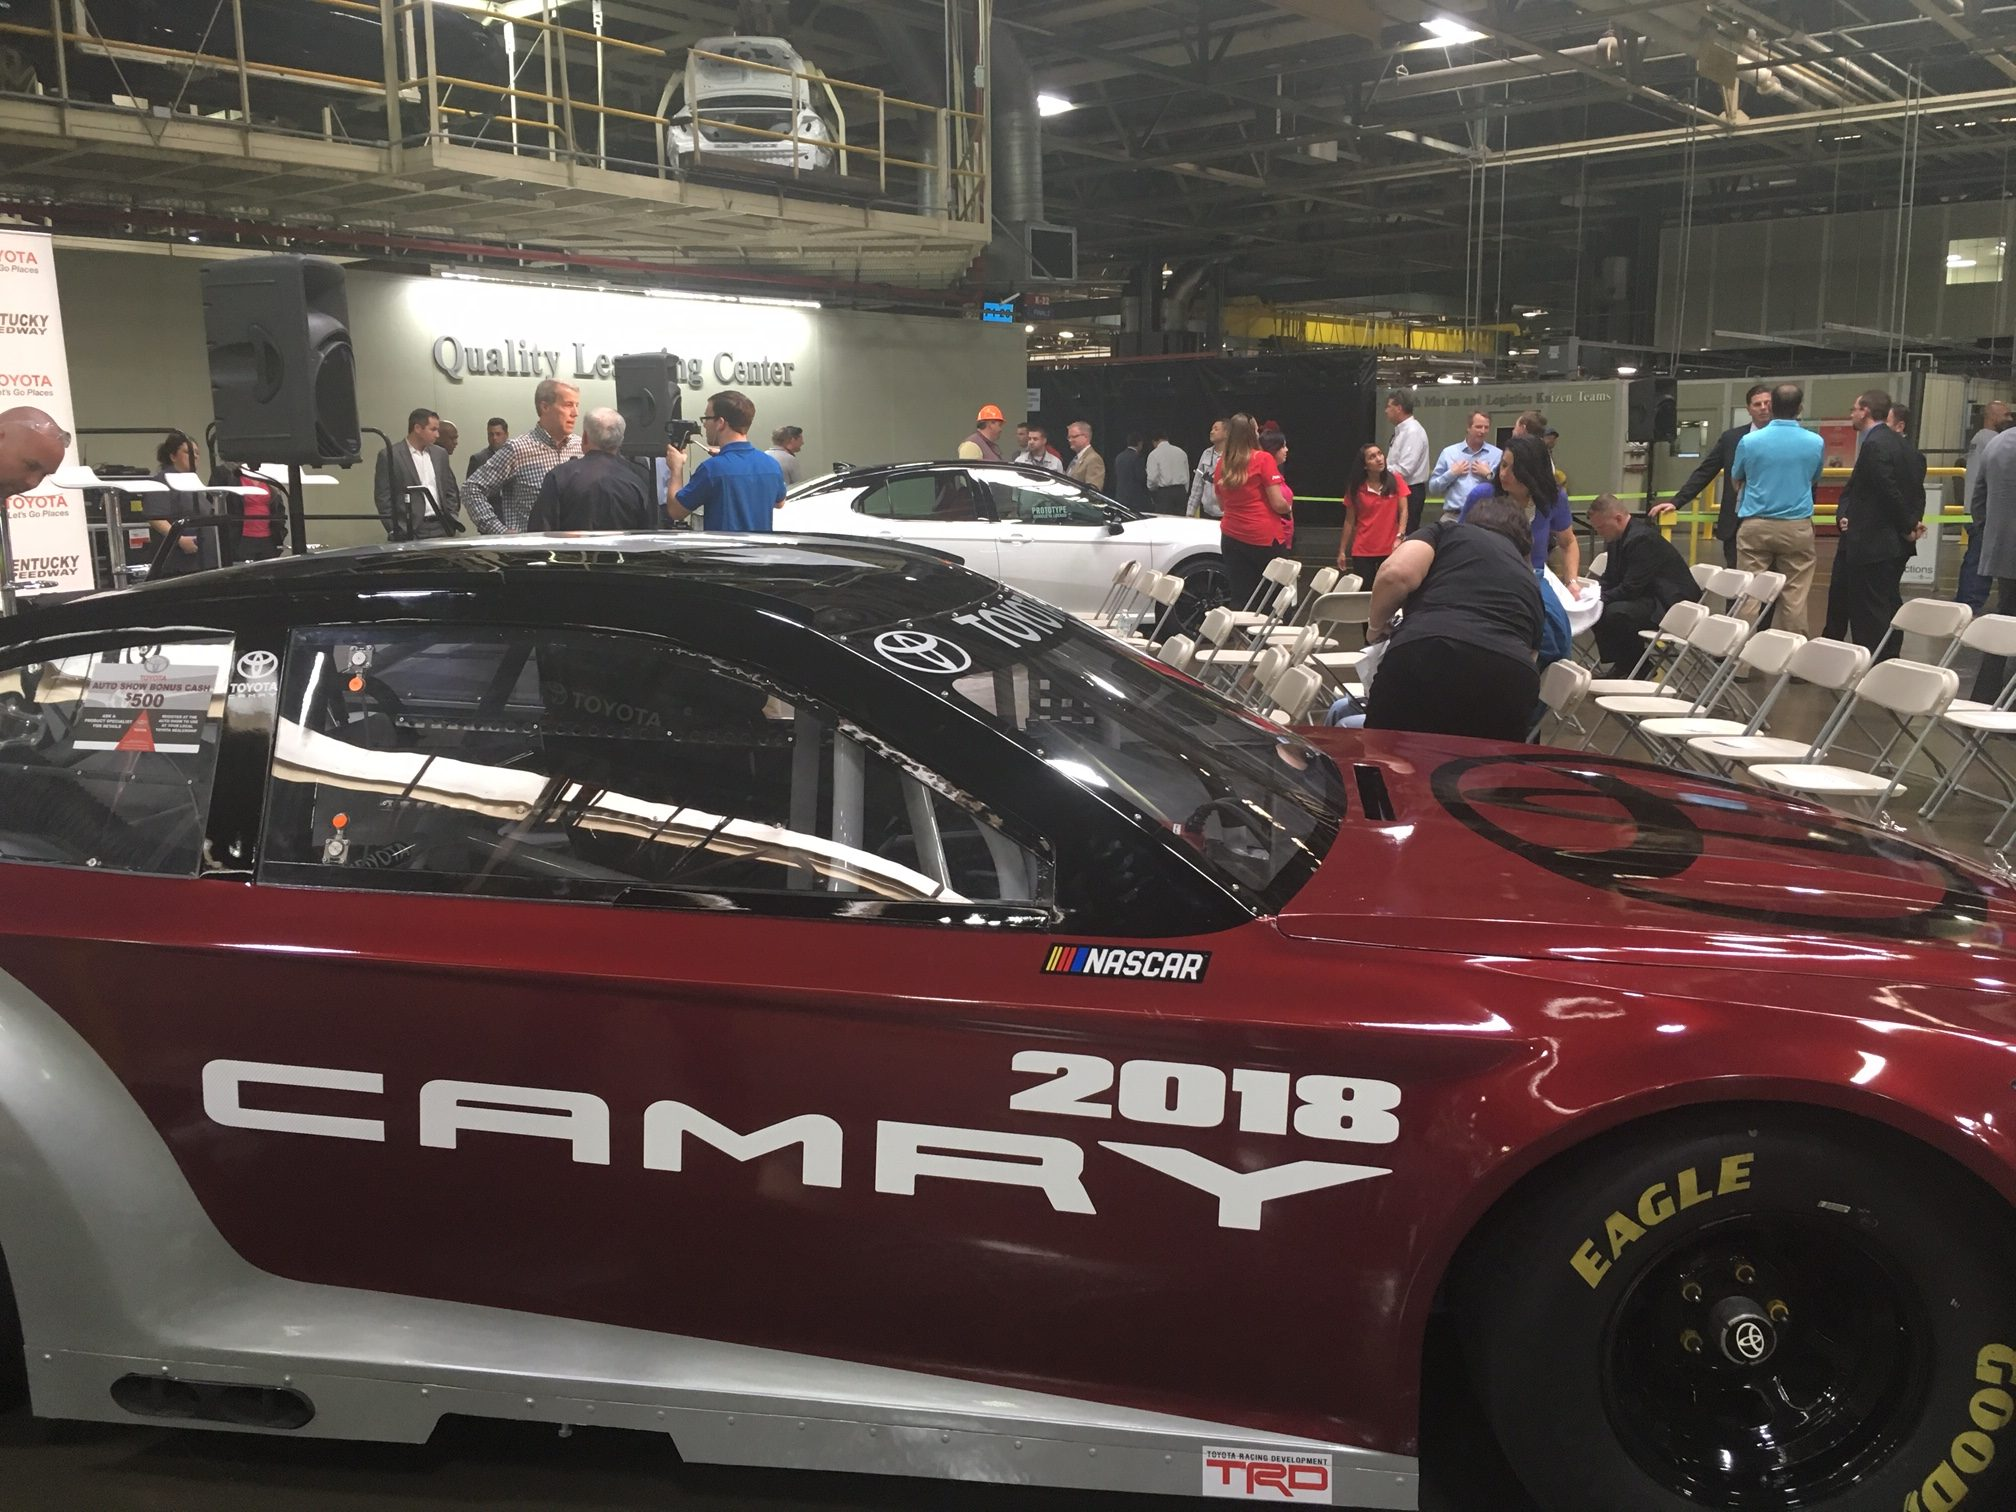 A 2018 nascar toyota camry sits in front of the white prototype vehicle that will be available for consumers soon one of toyota s goals is to make the